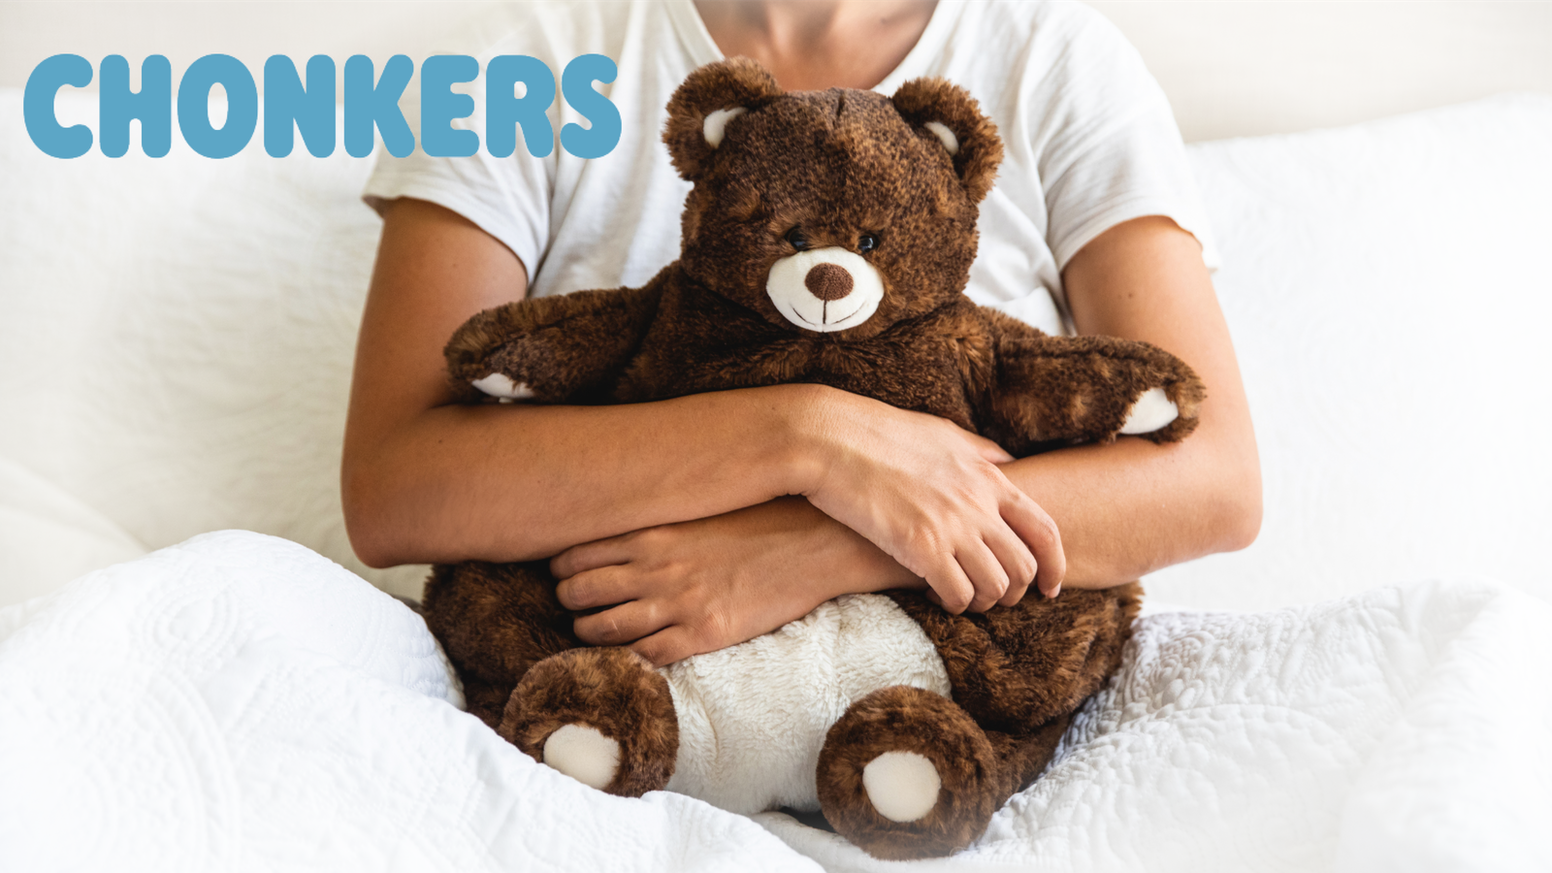 Adorably chubby stuffed animals that allow you to add weight, heat, scent, and more to help you find your calm and manage anxiety.